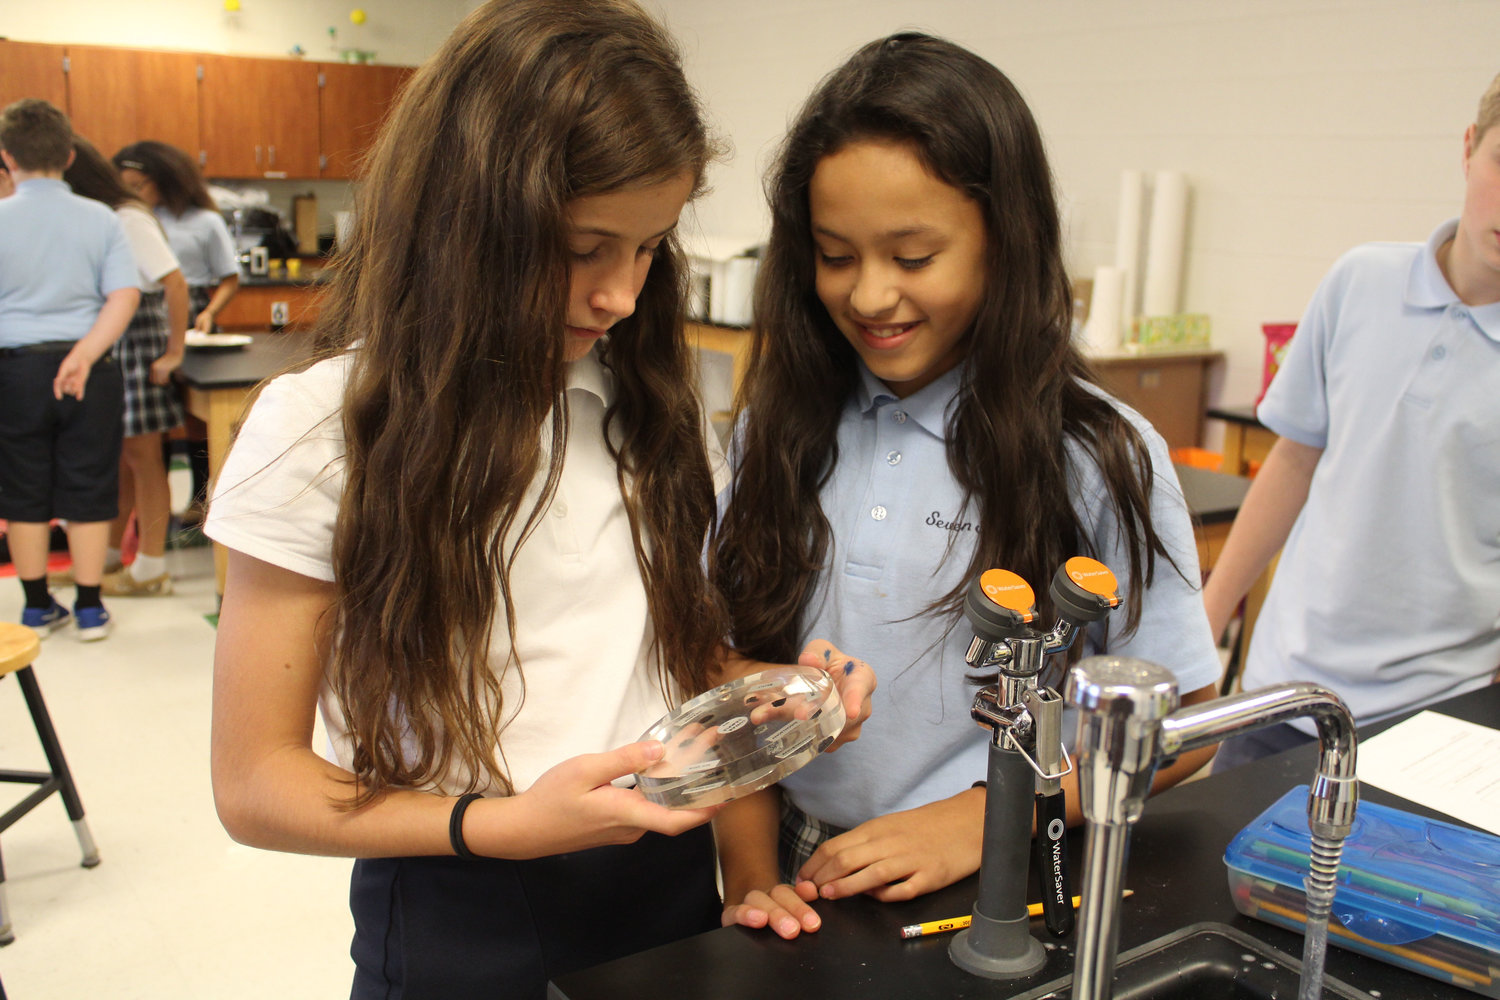 Cathleen Mooney and Paulina Torres look at lunar rock samples during class on Oct. 24.